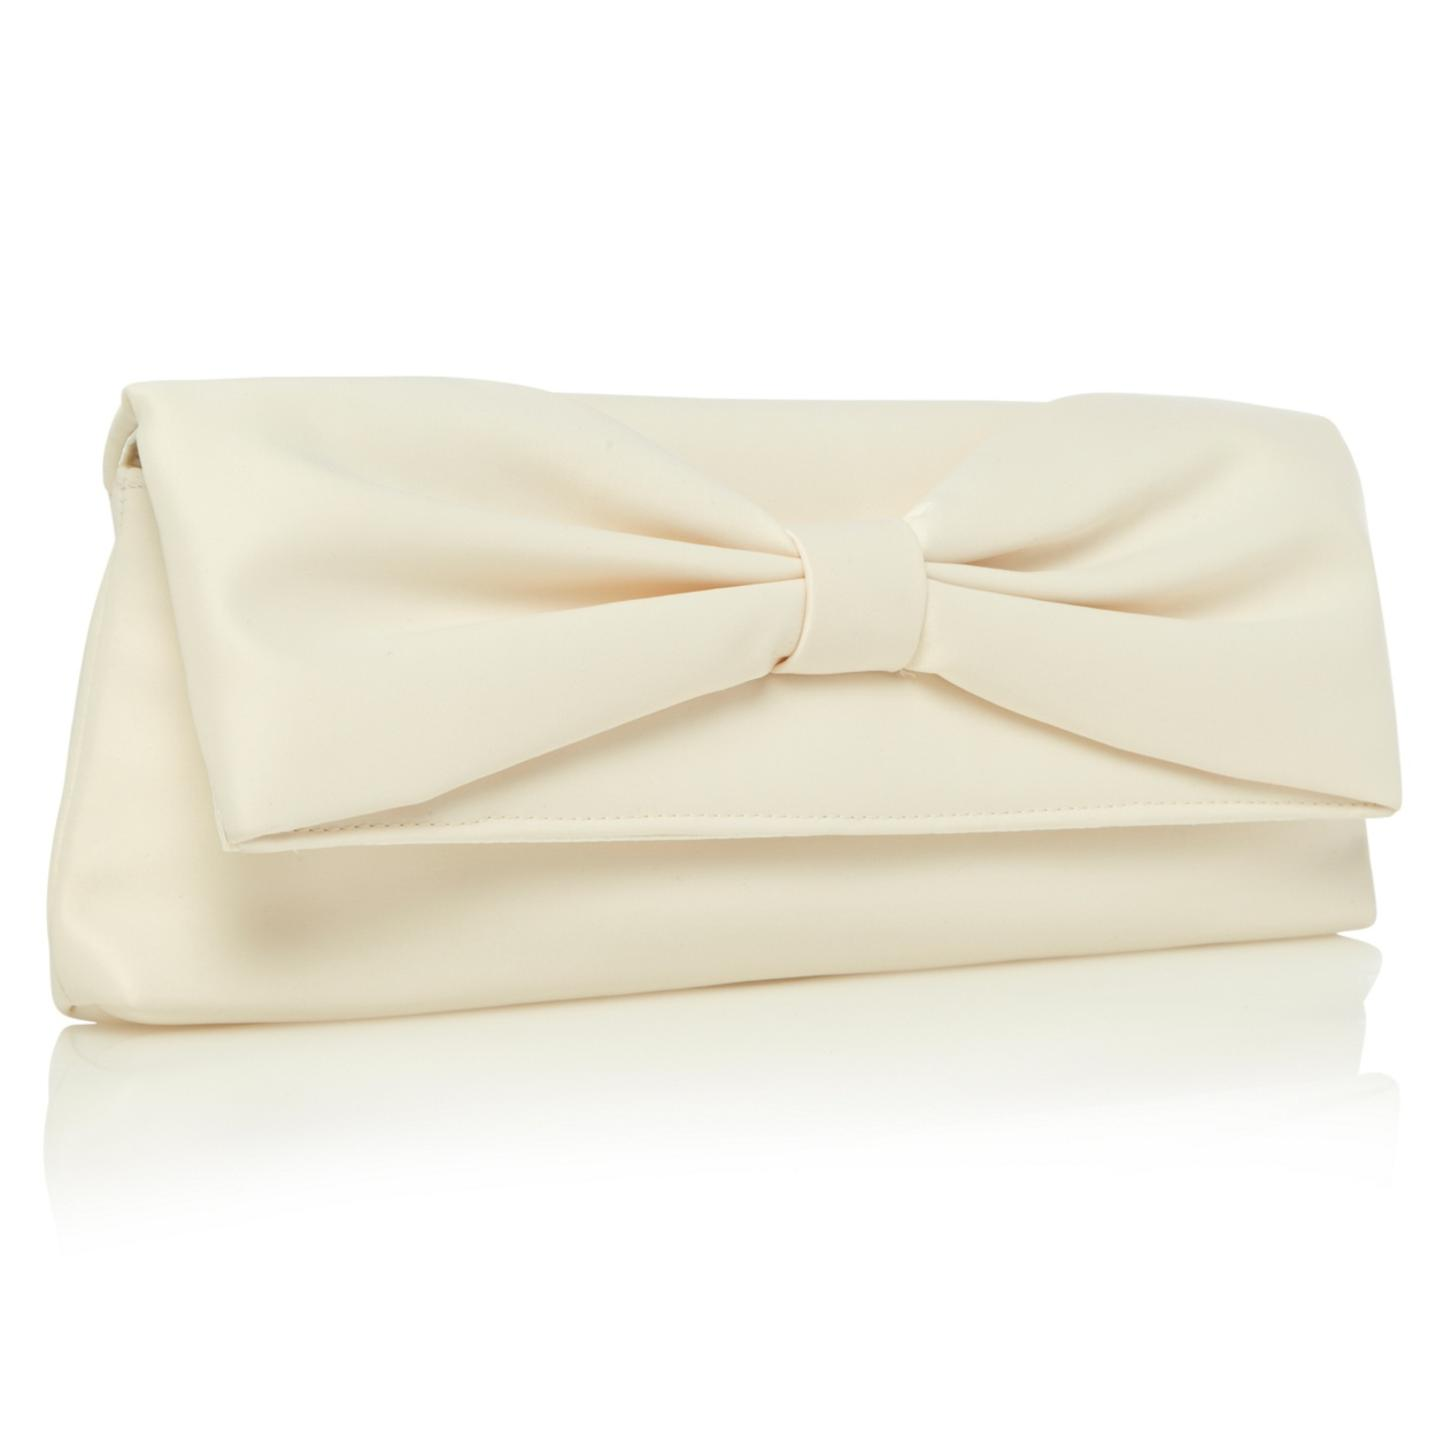 How to Incorporate A Cream Clutch Bag in Your Outfit